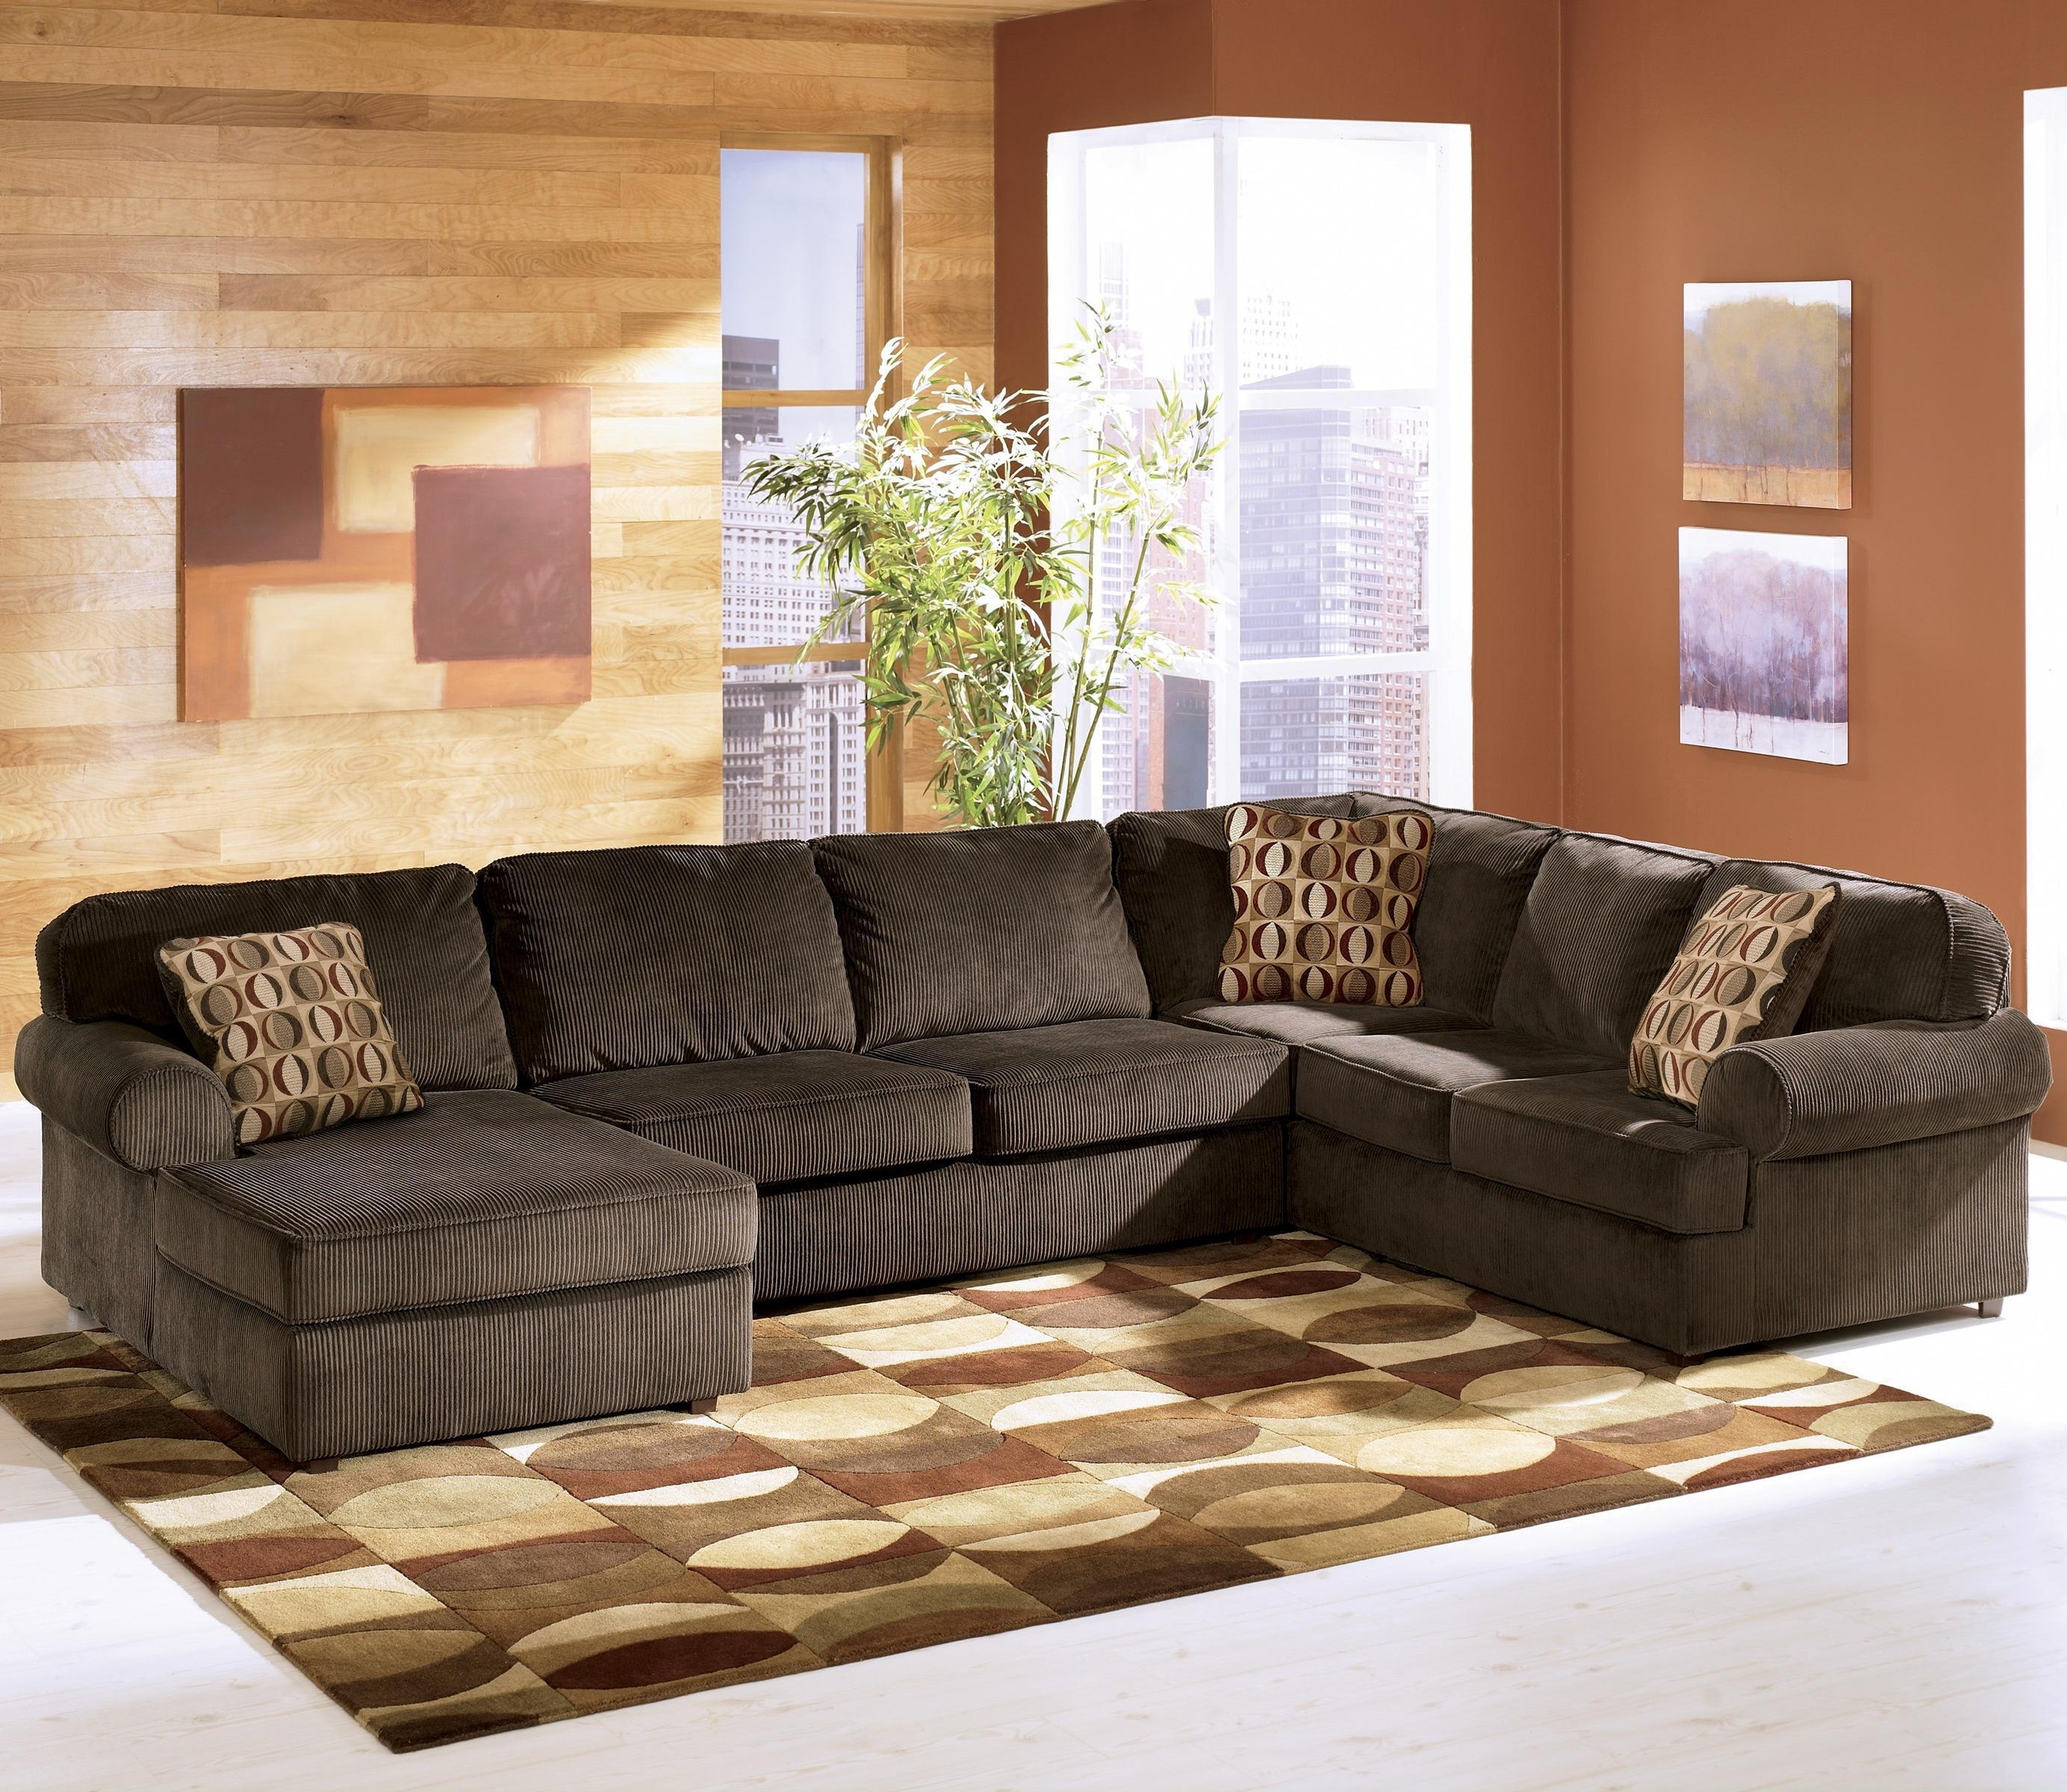 Furniture: Plenty Of Room For The Whole Family With Furniture Stores within Jonesboro Ar Sectional Sofas (Image 7 of 10)